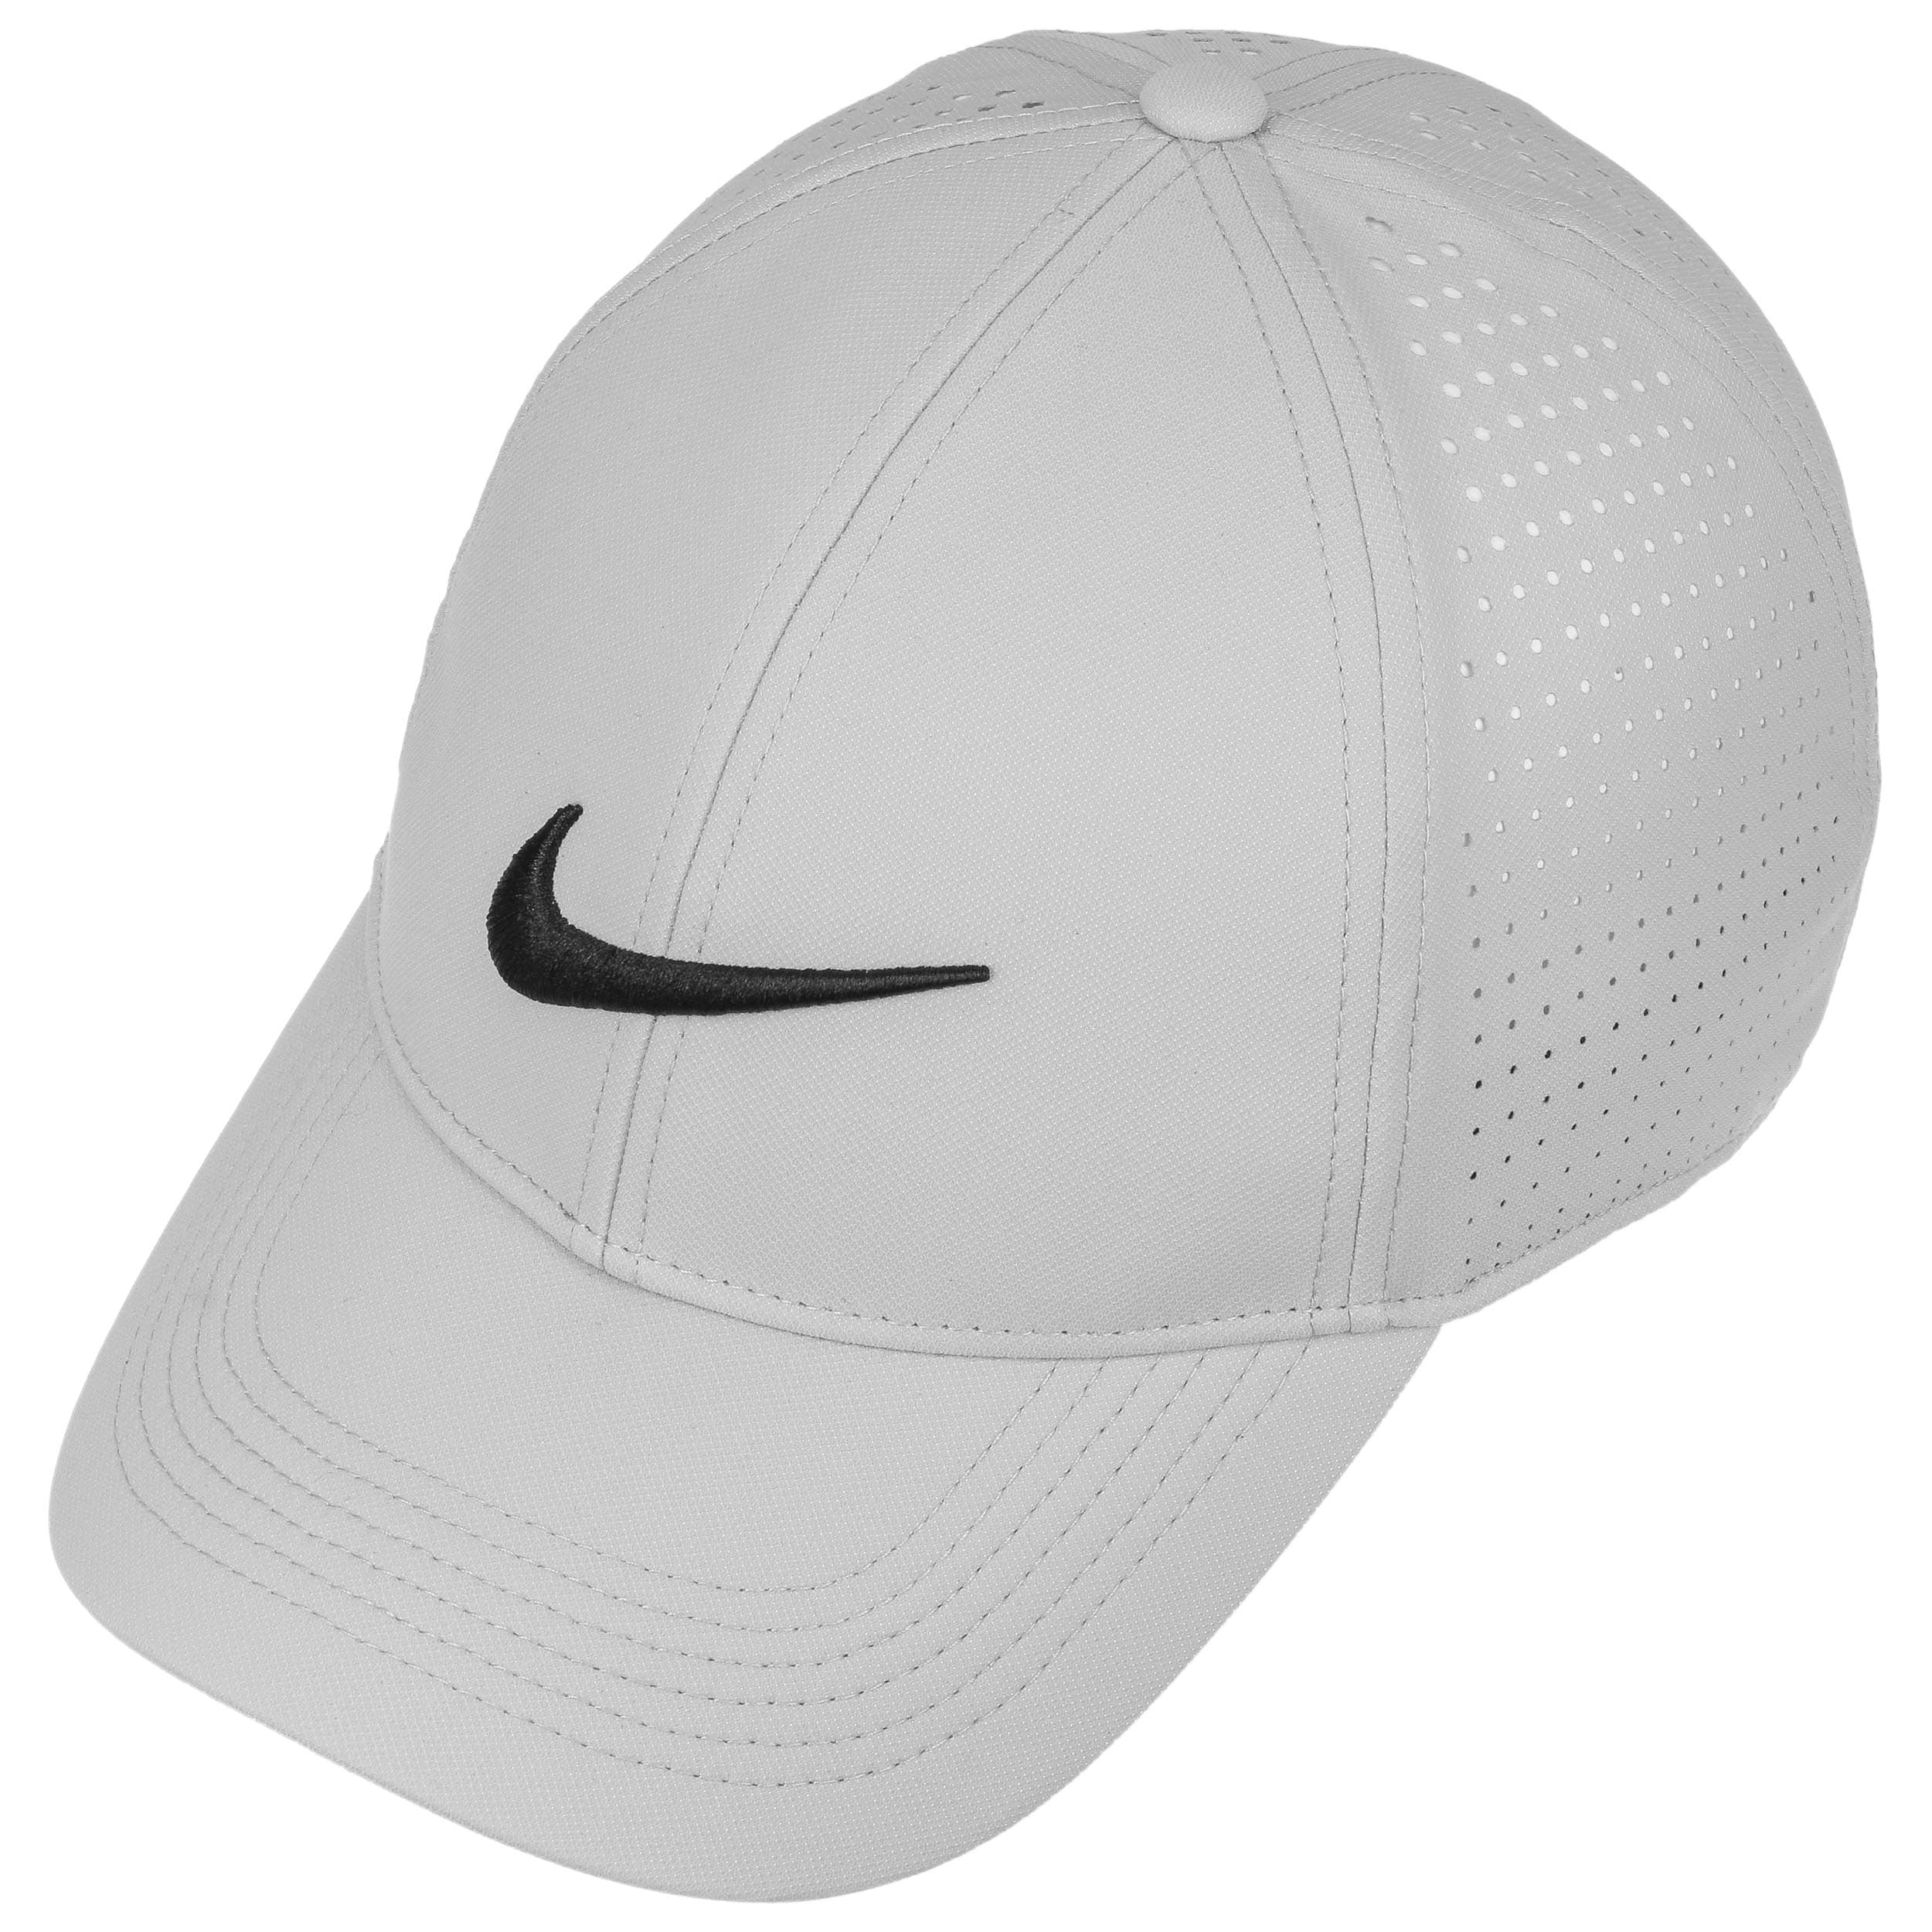 4808f4e9e3326 ... official store legacy 91 perf strapback cap by nike light grey 1 d5b14  e288c